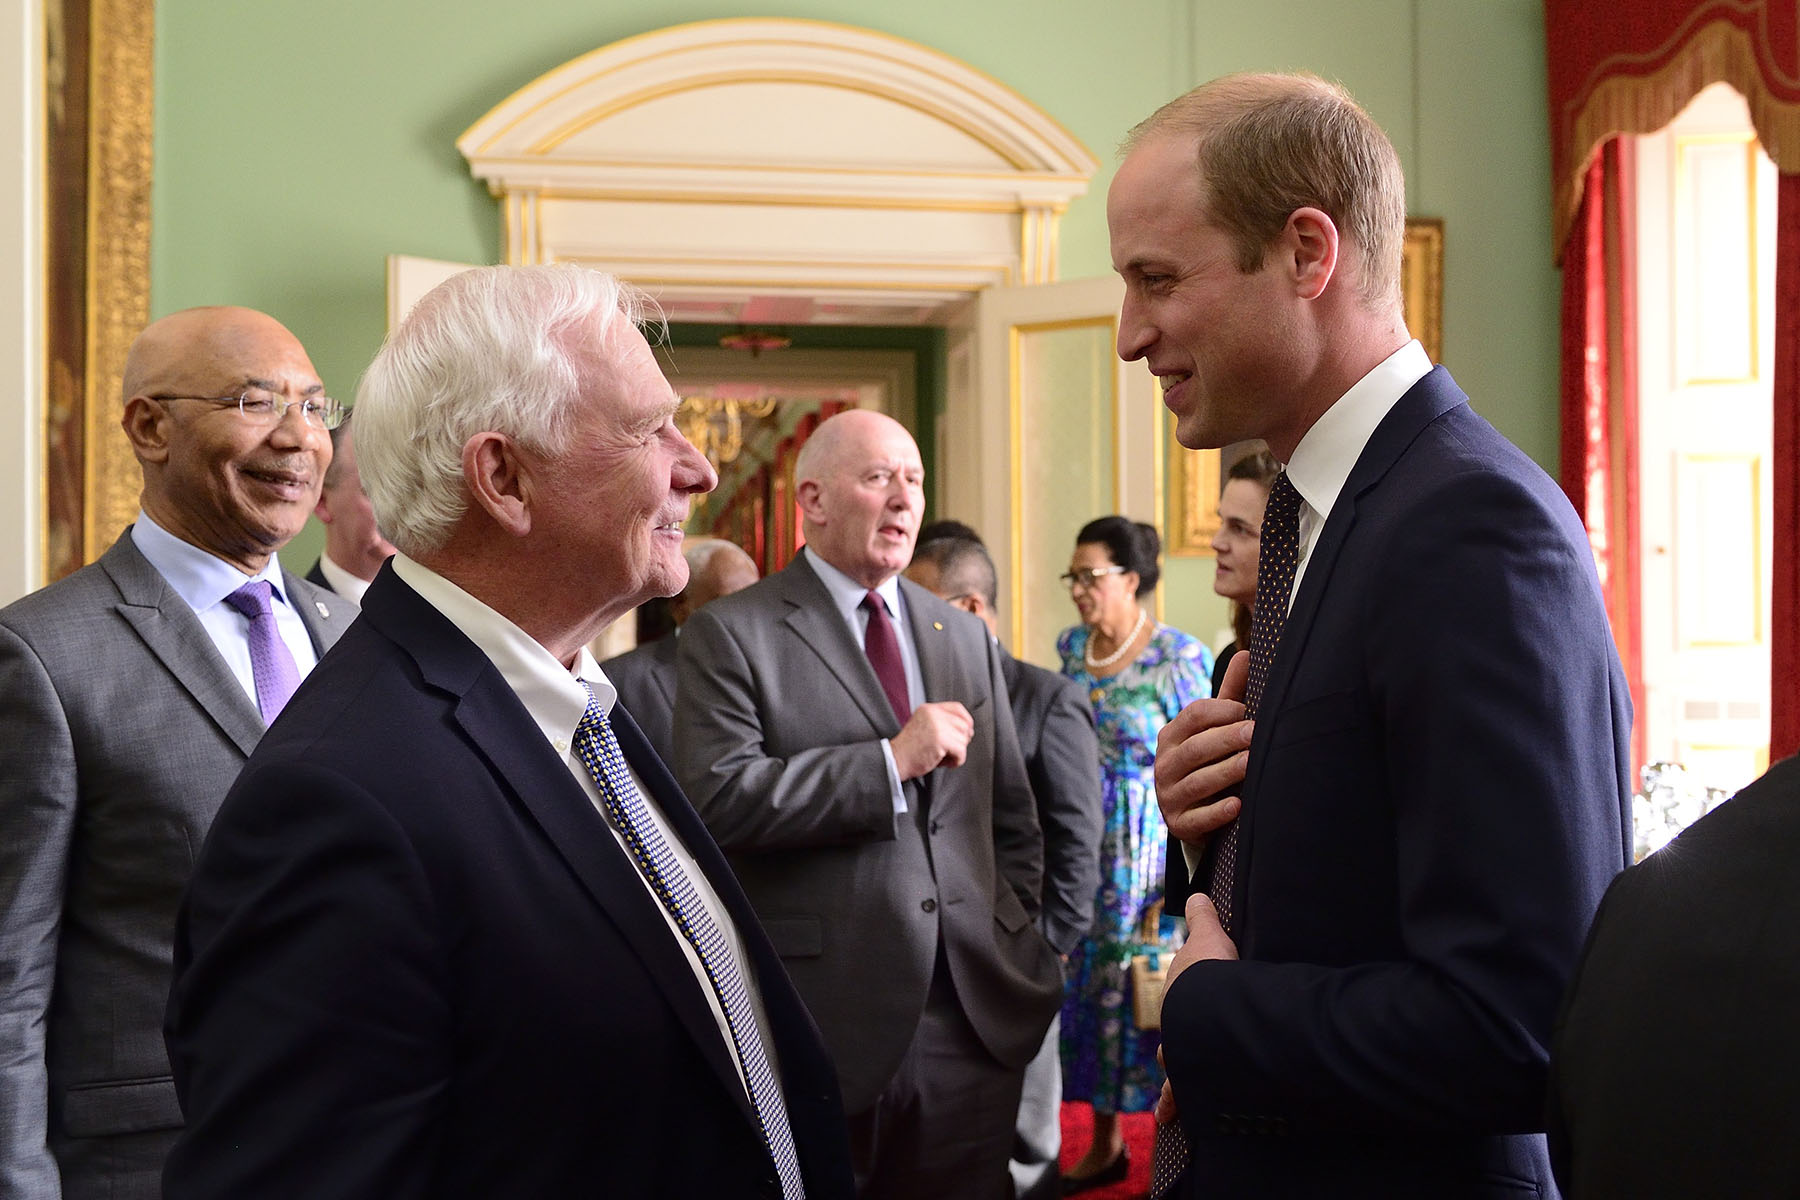 His Excellency also had the opportunity to speak with the Duke of Cambridge.